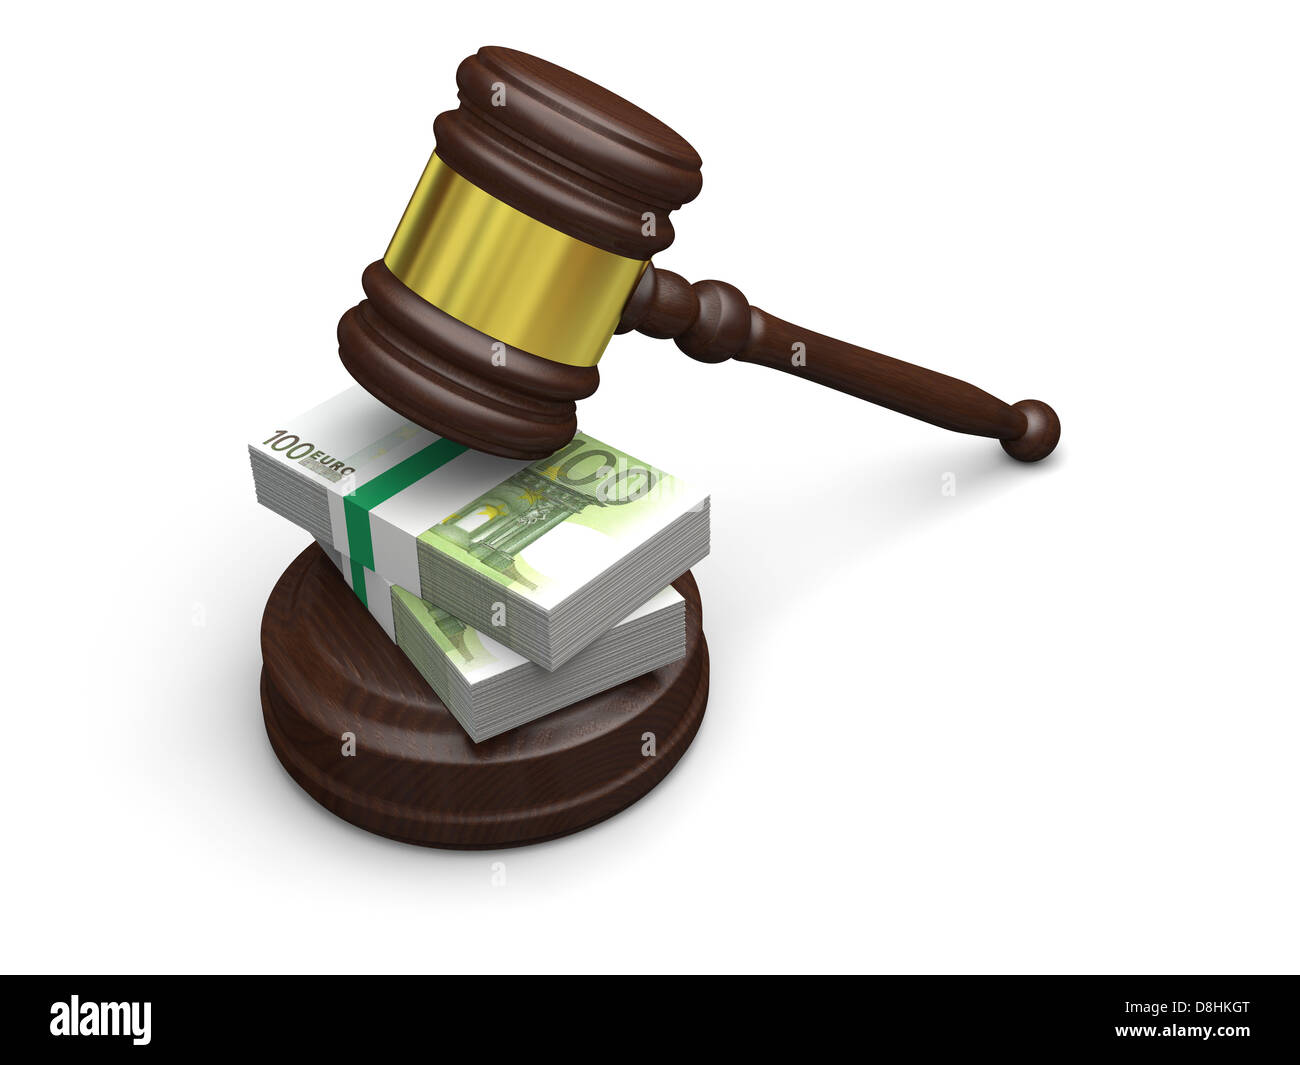 Money in justice, concept of high legal fees, corruption of financial law - Stock Image